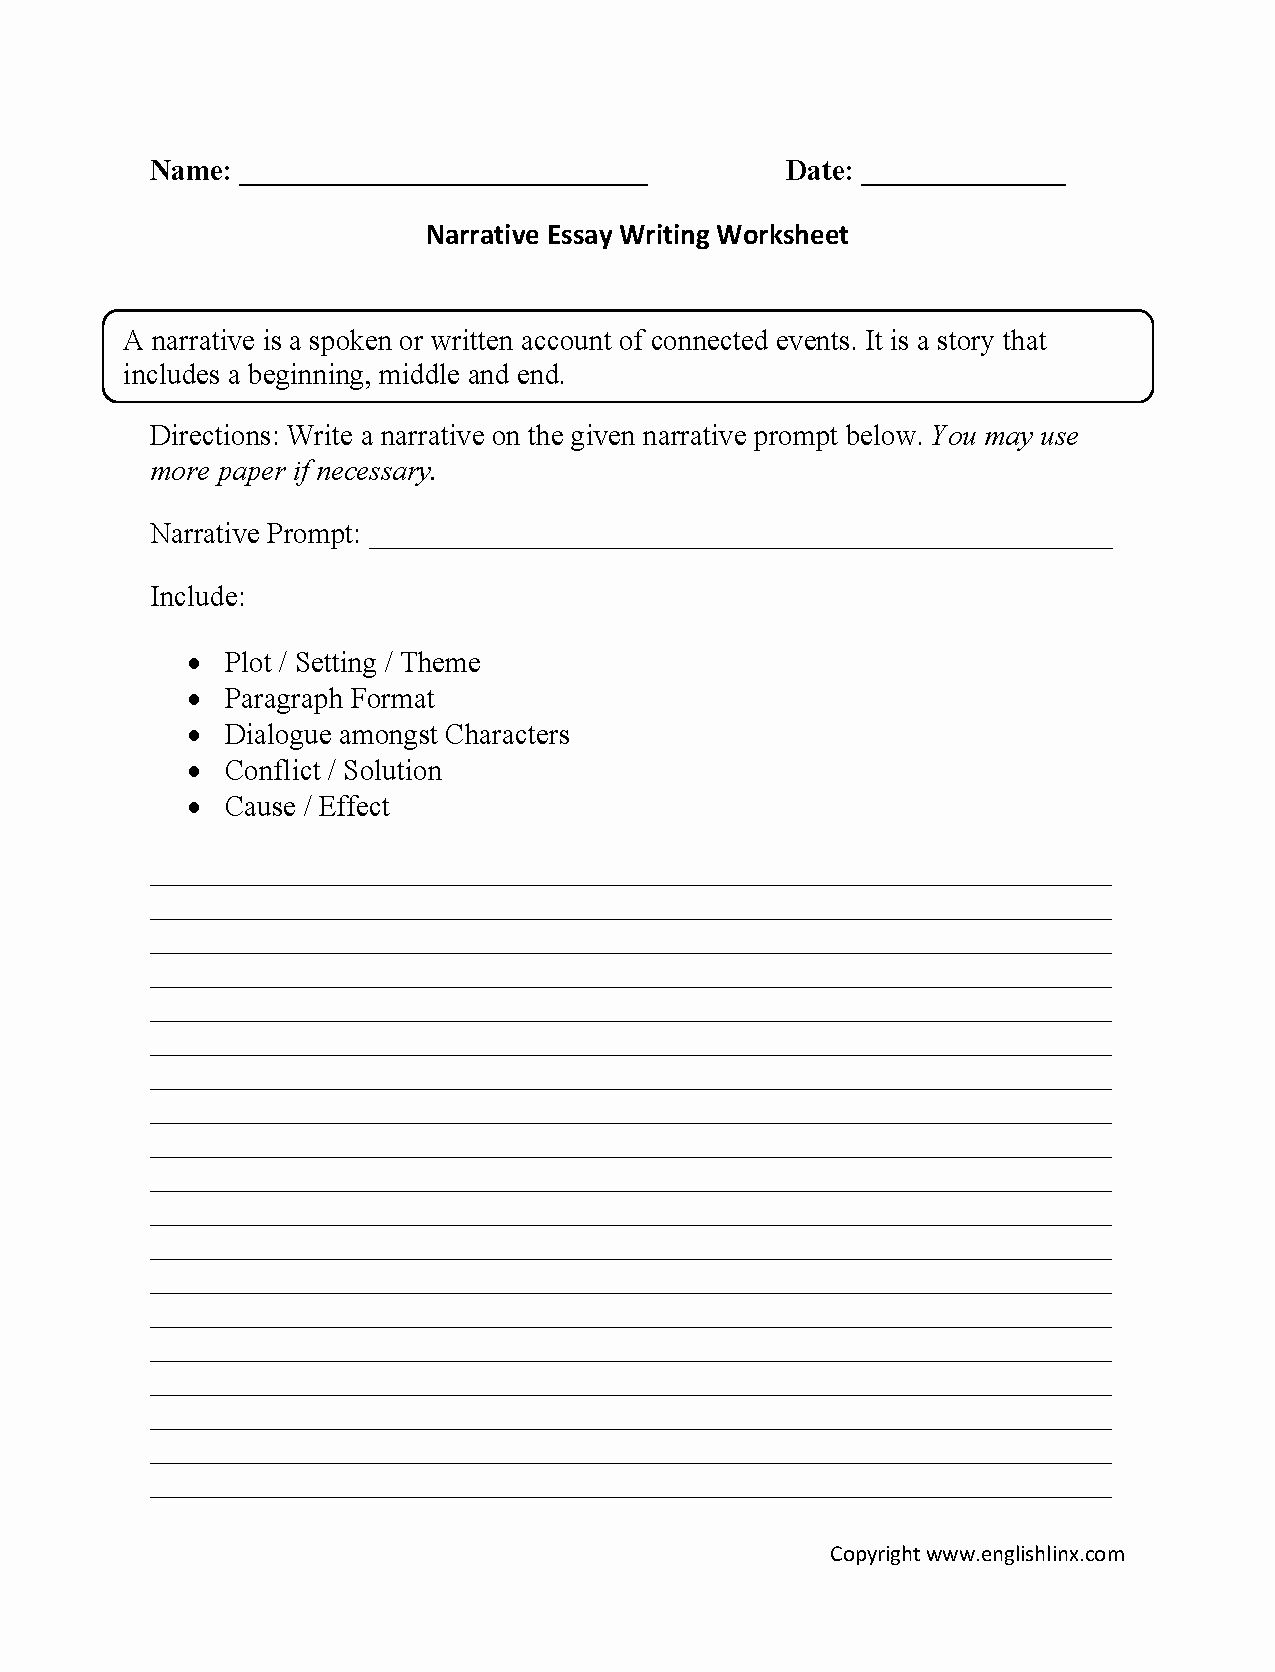 Writing Process Worksheet New Writing Worksheets